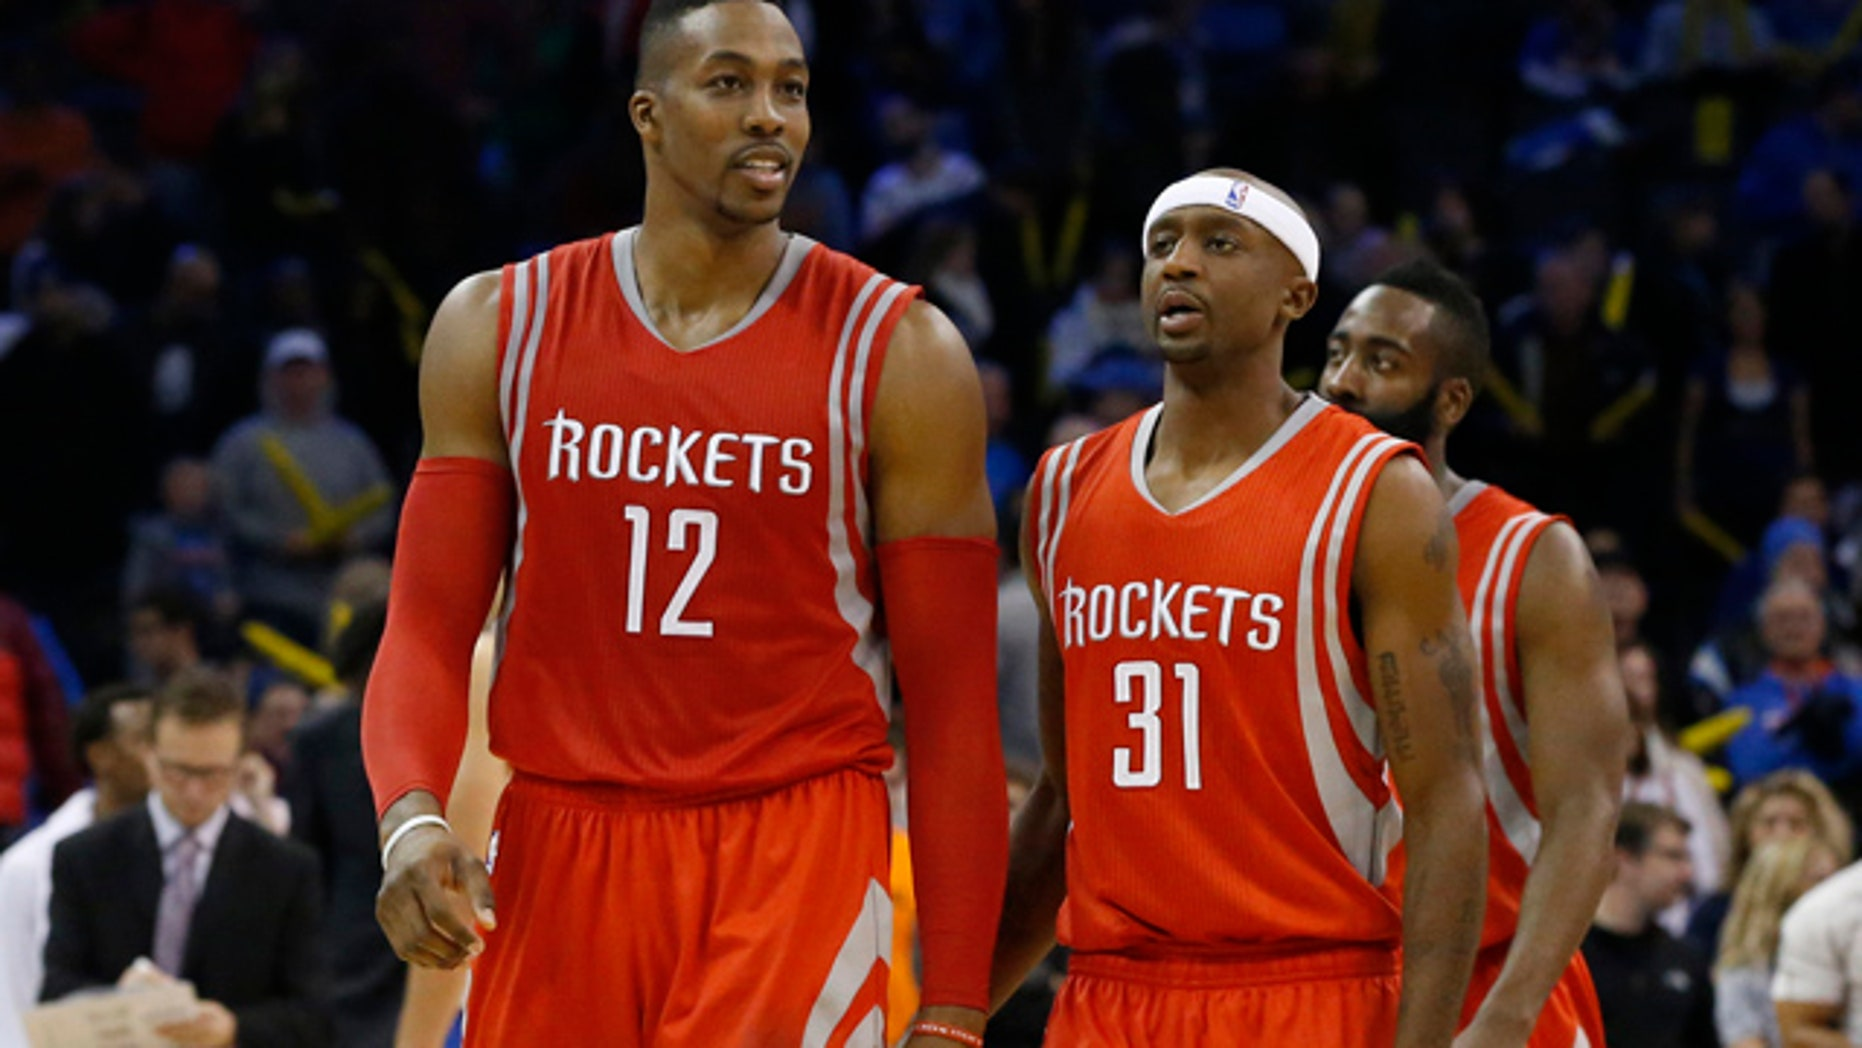 November 16, 2014: Houston Rockets' Dwight Howard (12), smiles as he, Jason Terry (31) and James Harden, right, walk off the court during a time out in the fourth quarter of an NBA basketball game in Oklahoma City. Houston won 69-65. (AP Photo/Sue Ogrocki)